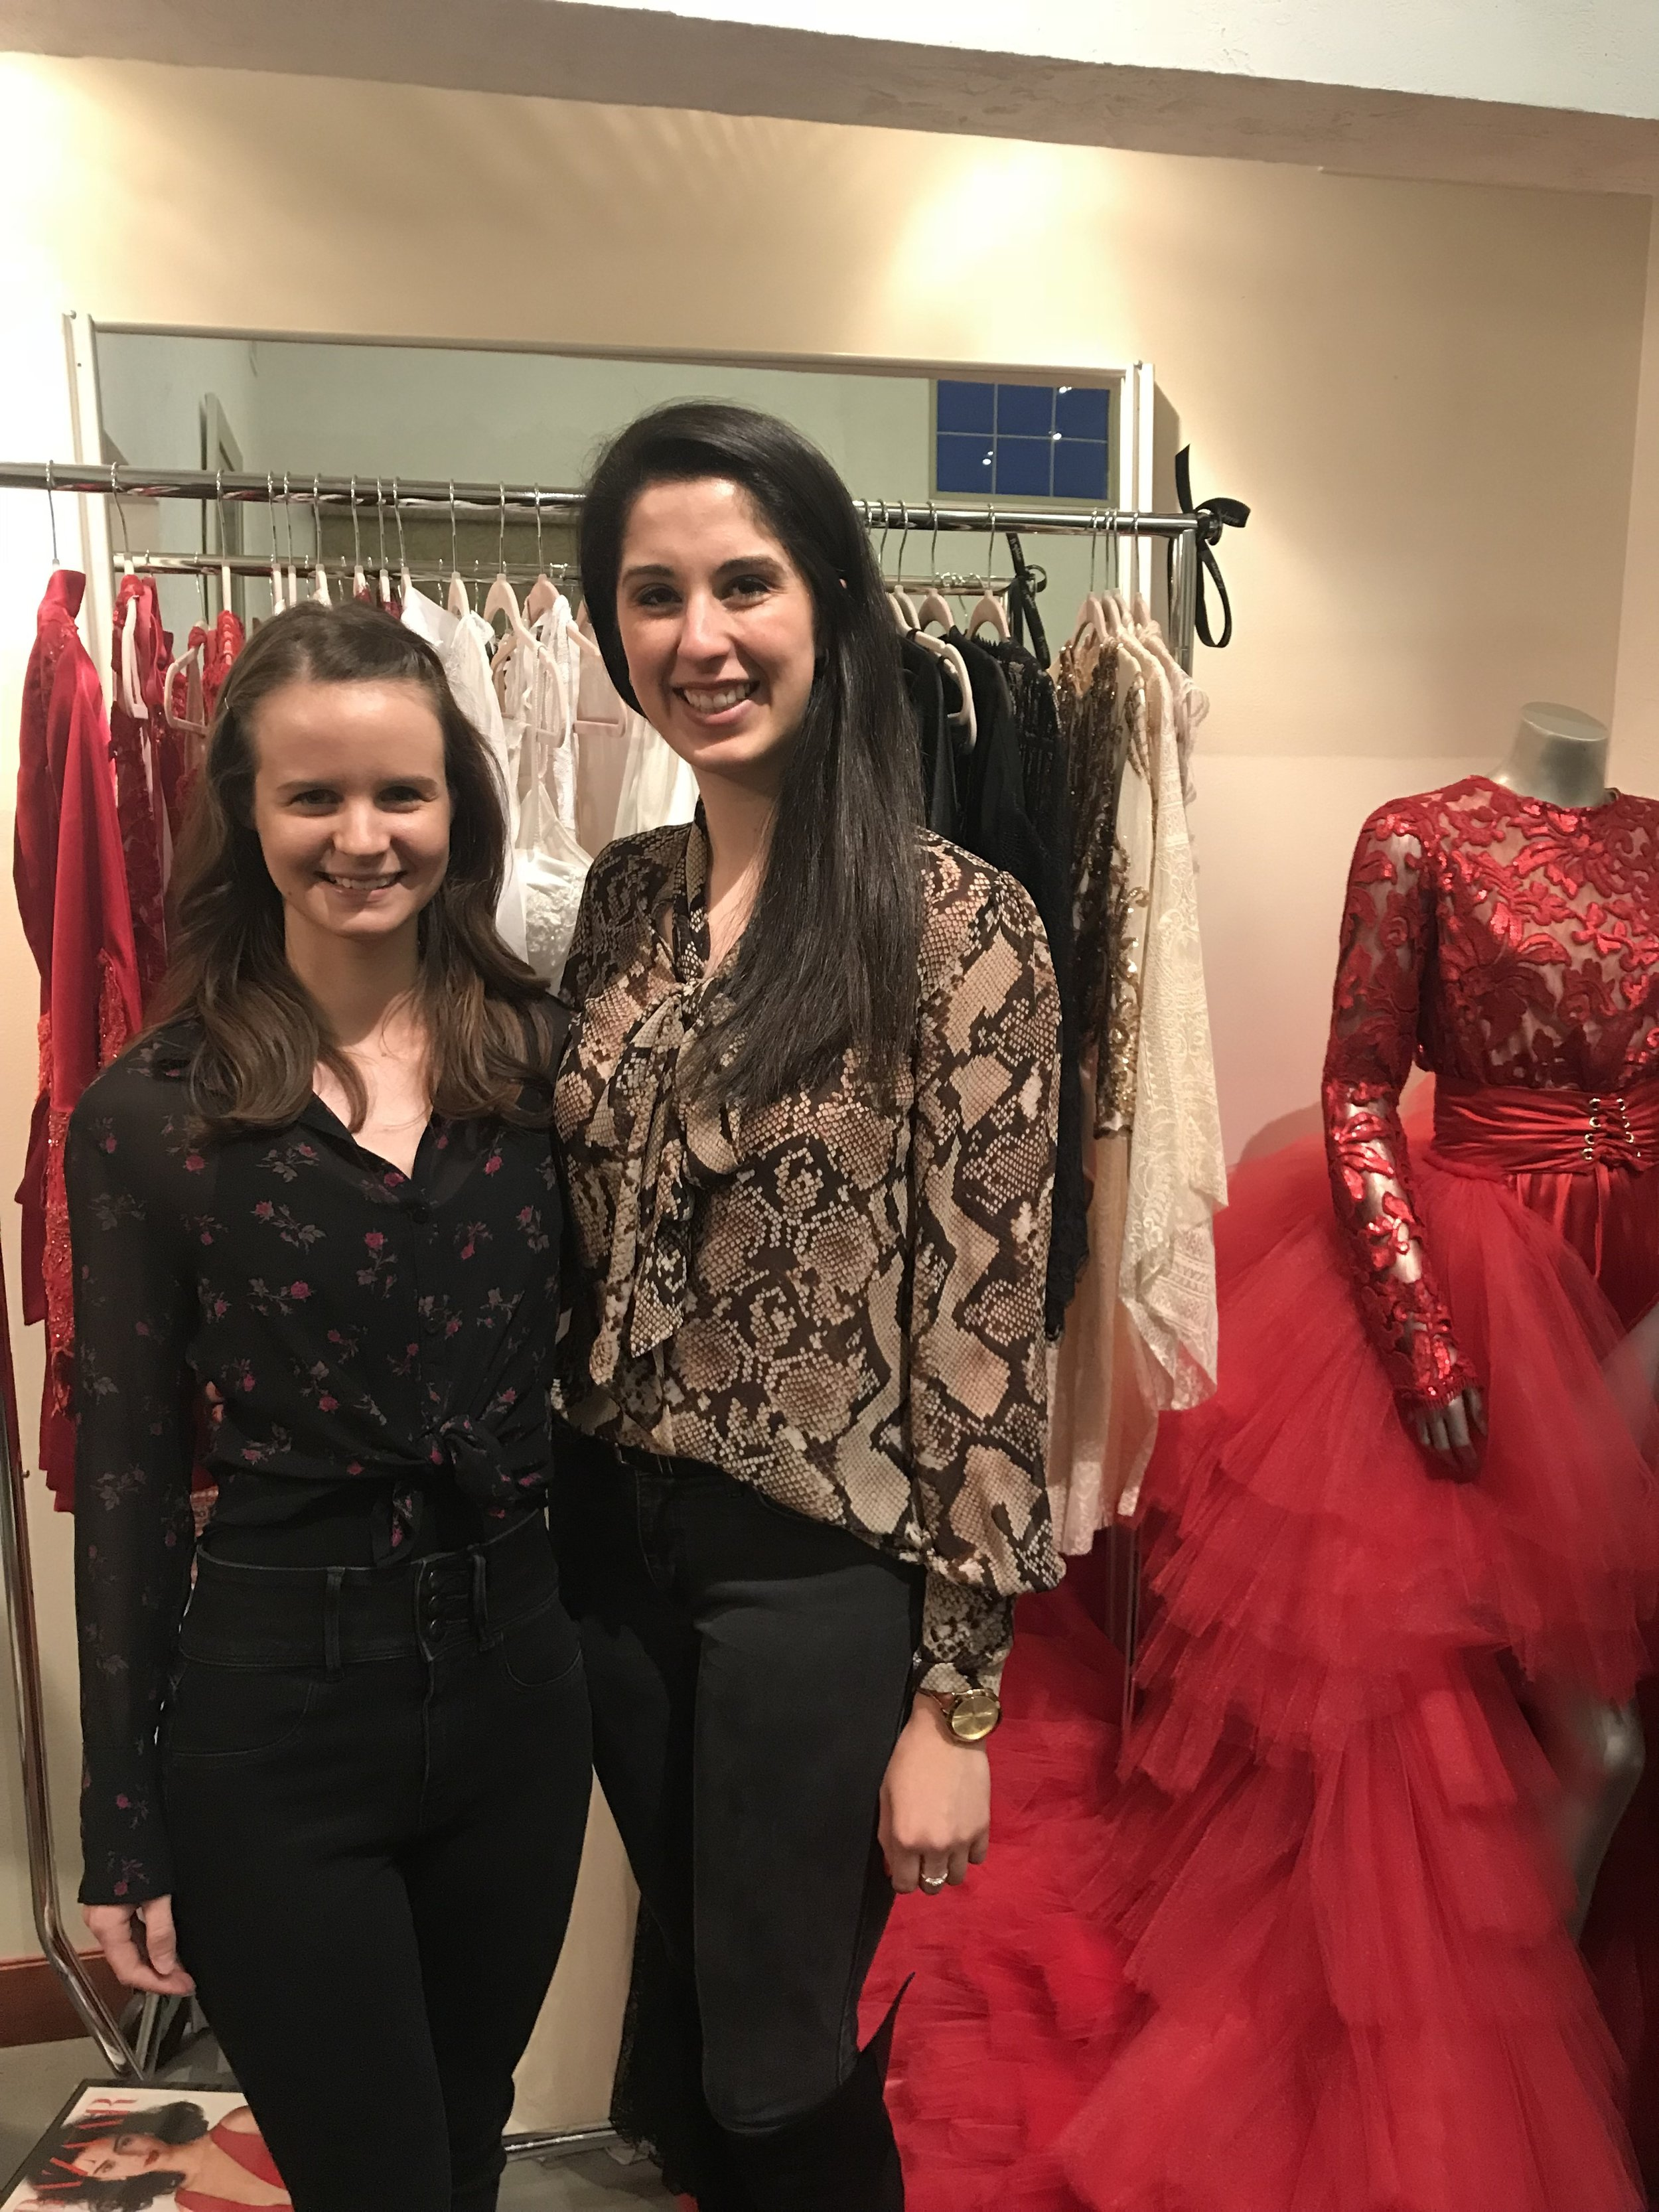 After the Fashion and Friends event at Zing Boutique in Port Washington, WI.